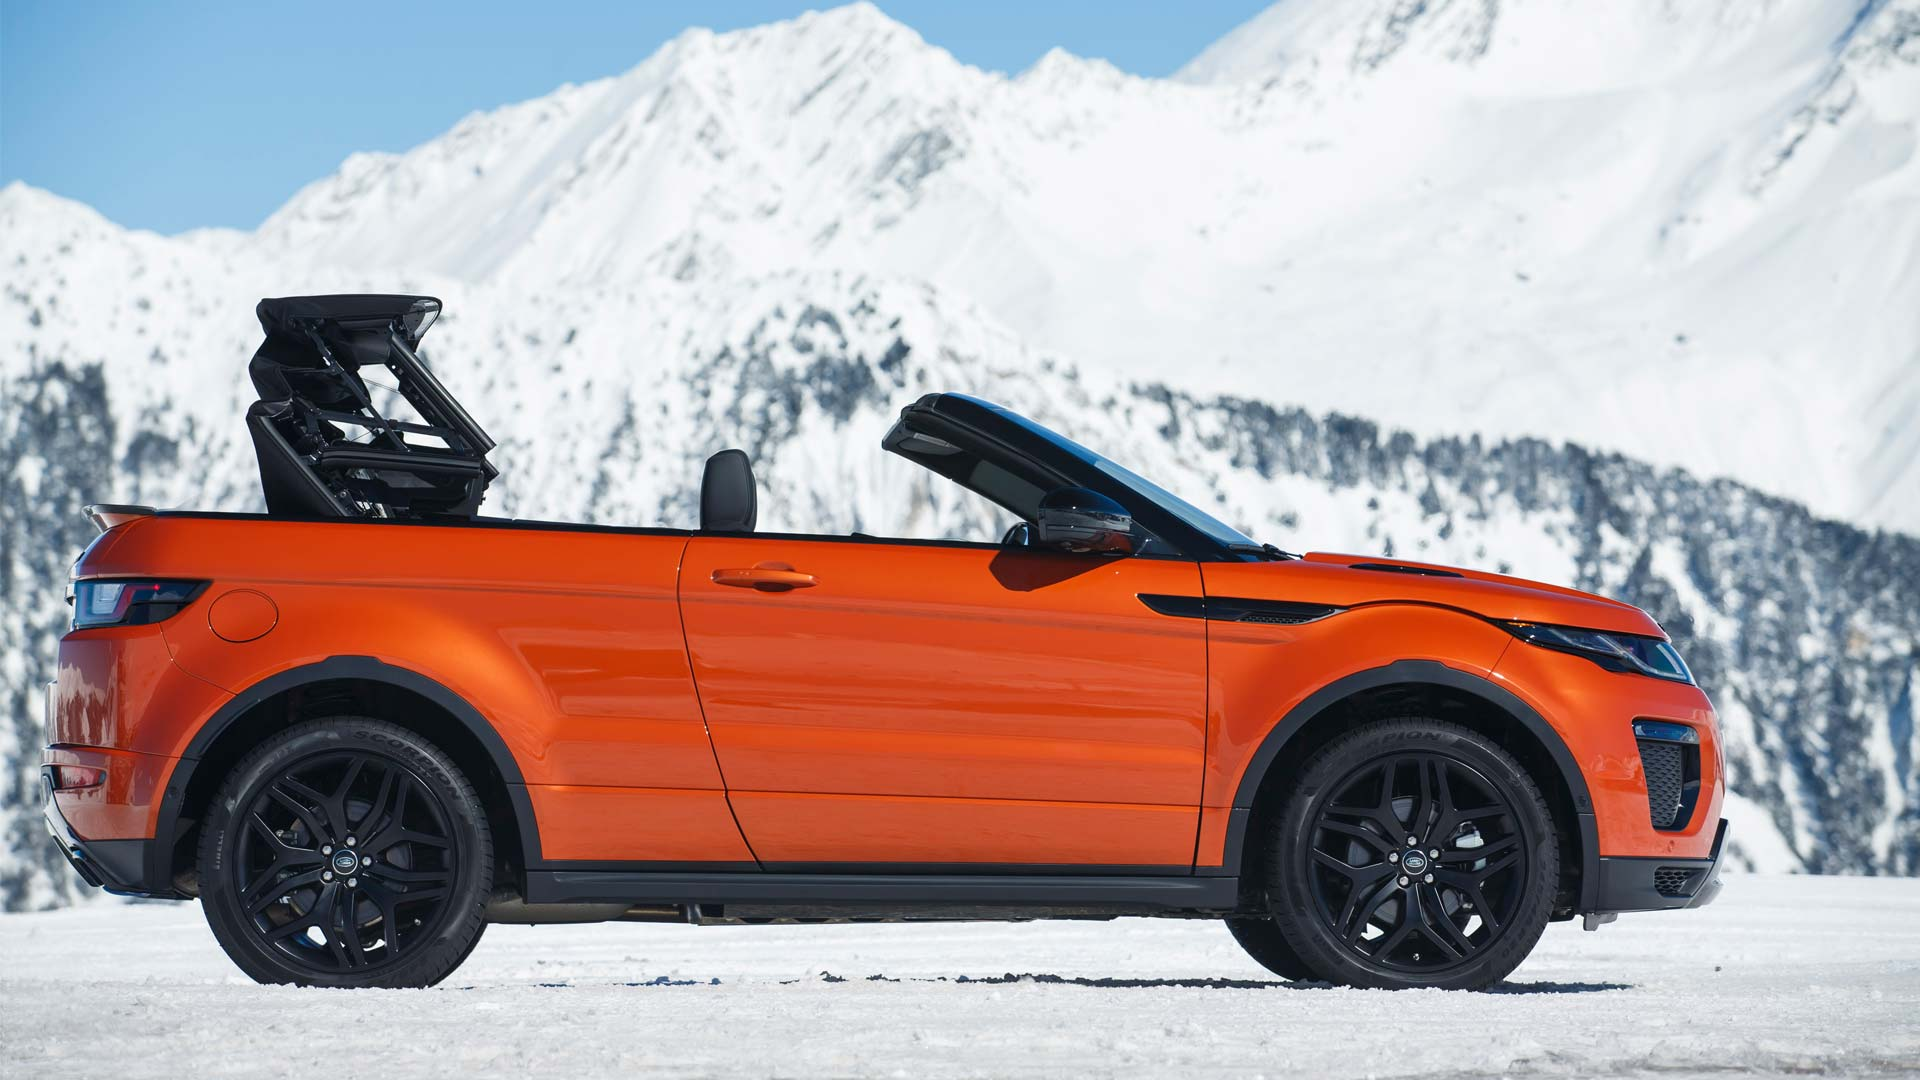 Range Rover Evoque Convertible Launched At Rs 69 53 Lakh